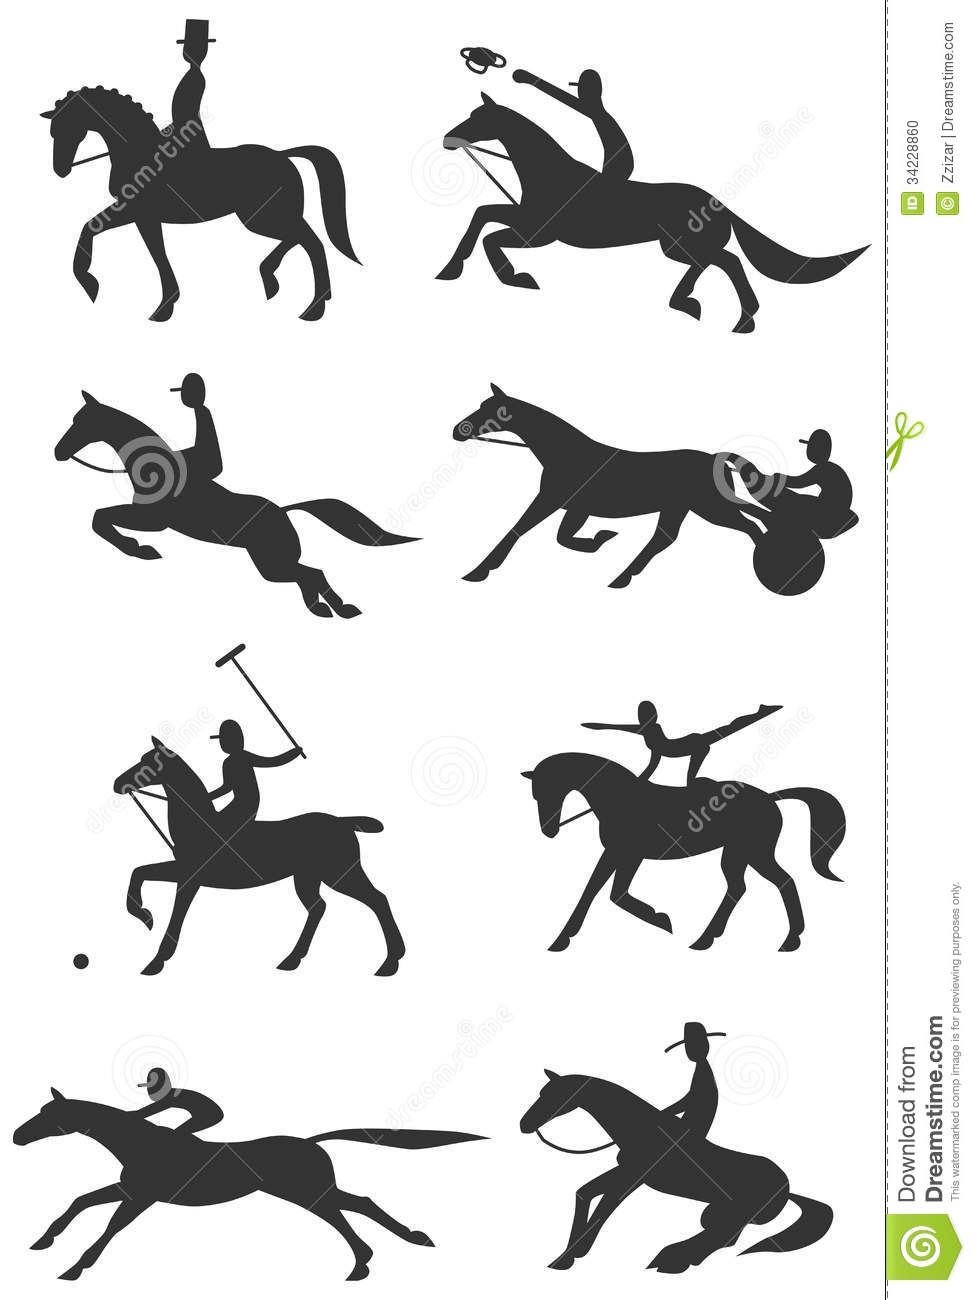 Icons Equestrian Sports Stock Photo Image 34228860